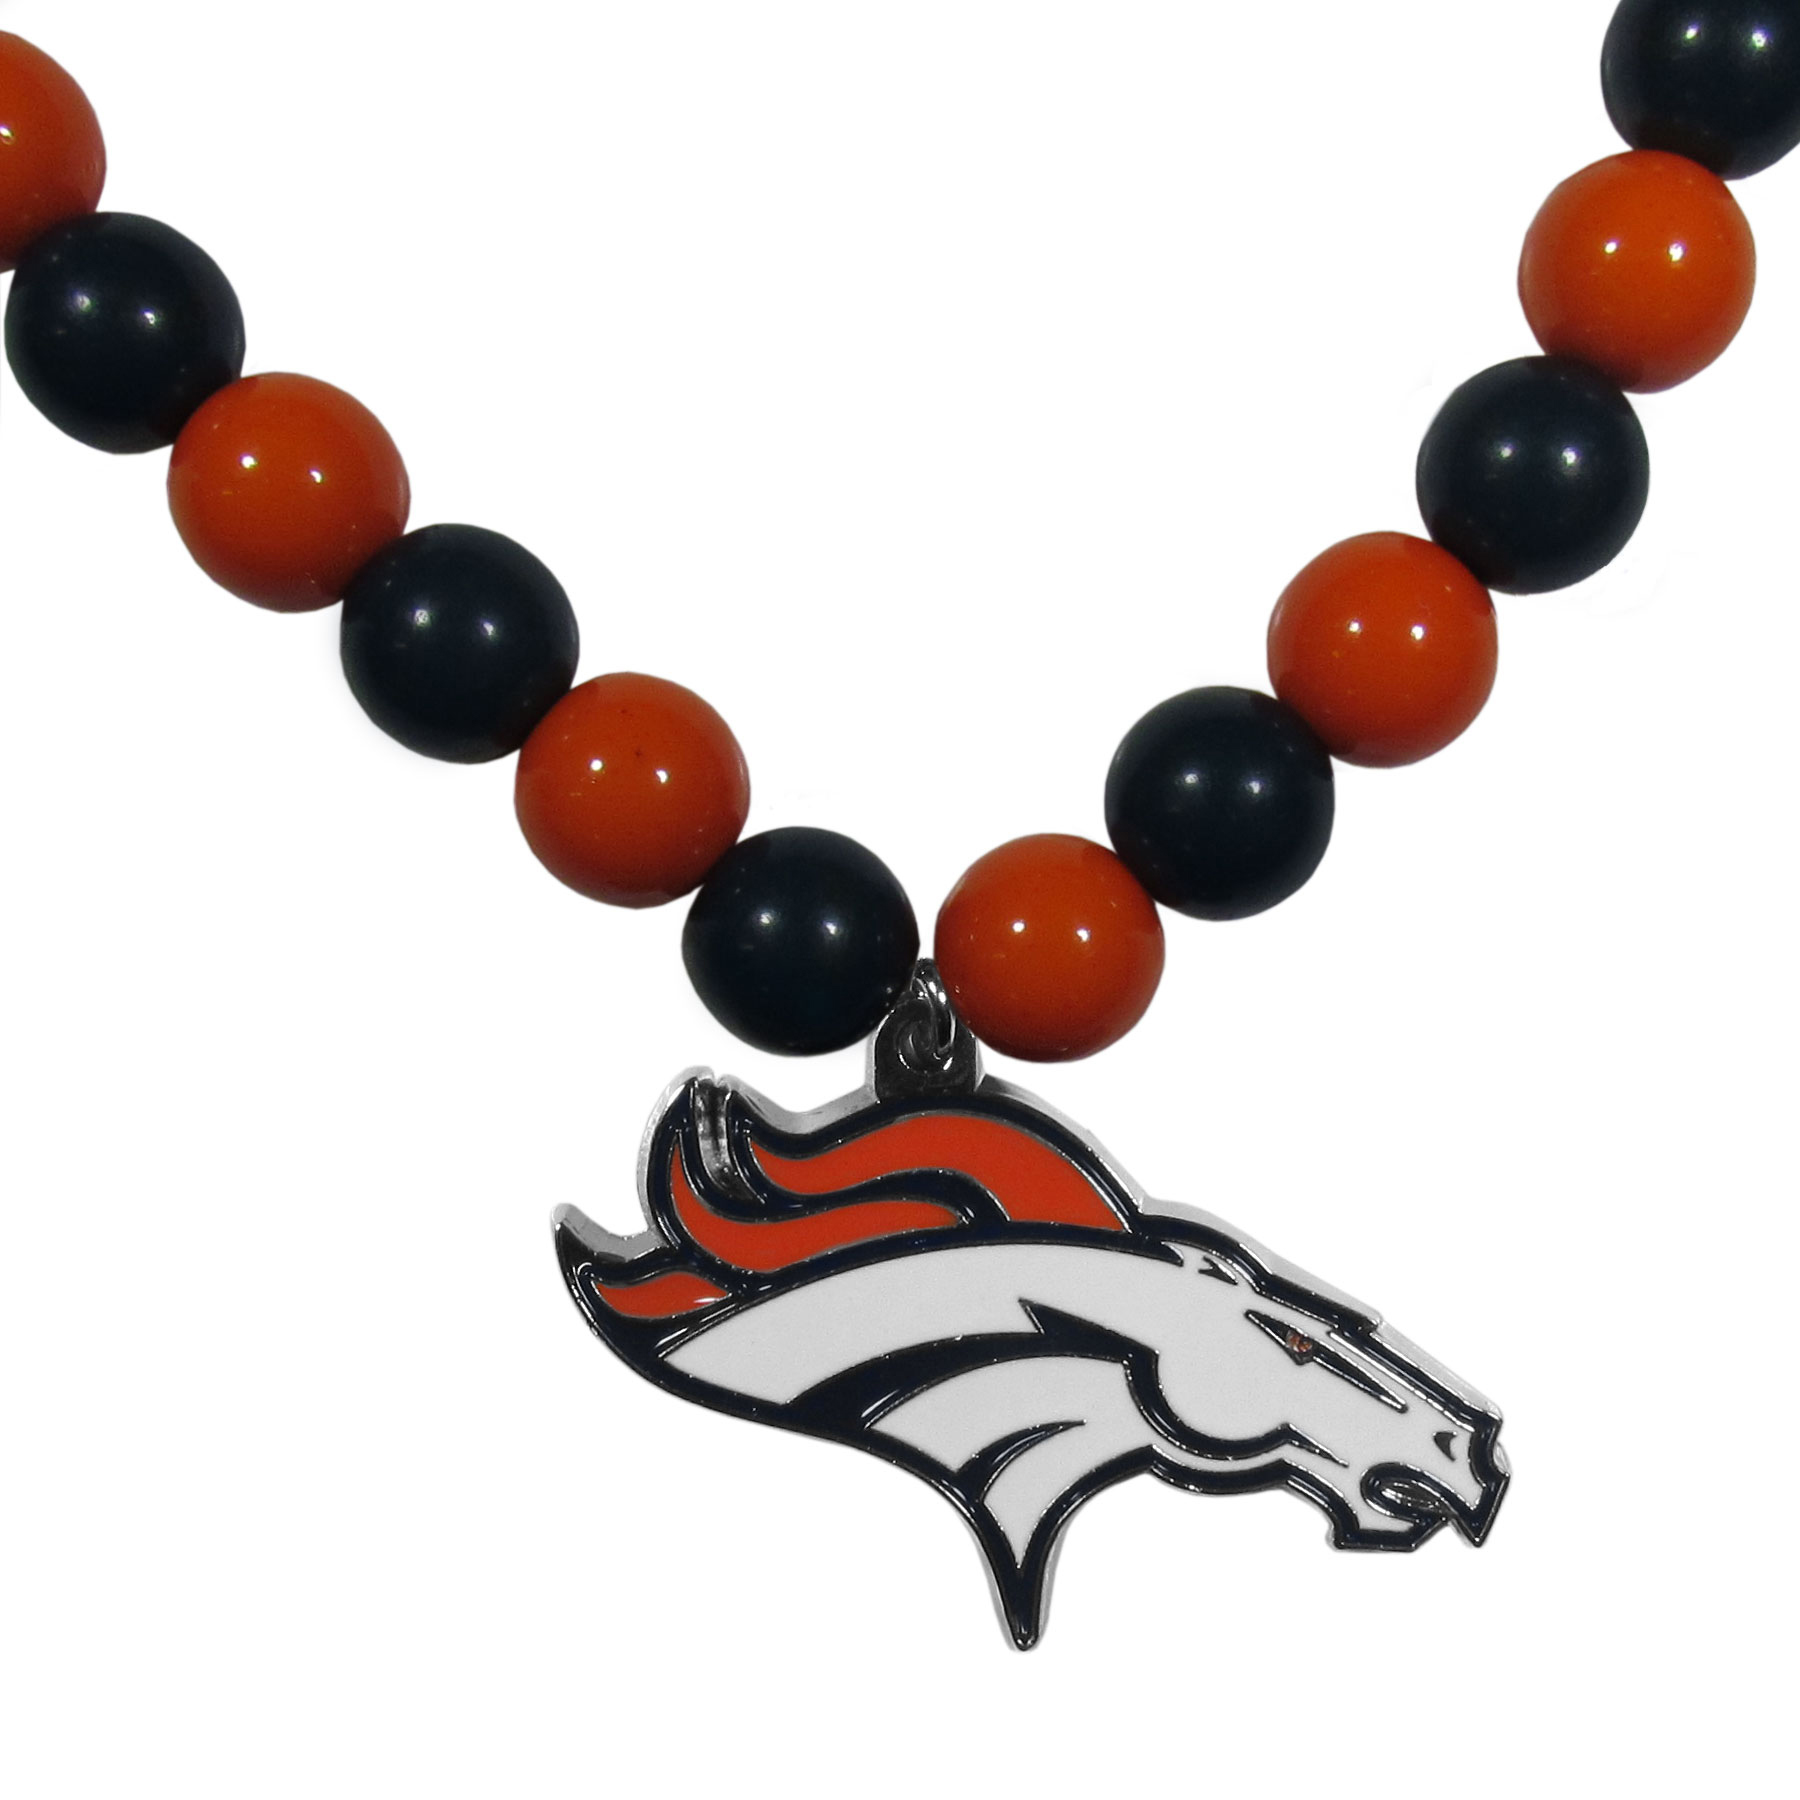 Denver Broncos Fan Bead Necklace - Make a big statement with our fan bead necklaces! These brightly colored necklace have a 24 inch string of alternating colored beads with an extra large, high-polish Denver Broncos pendant.